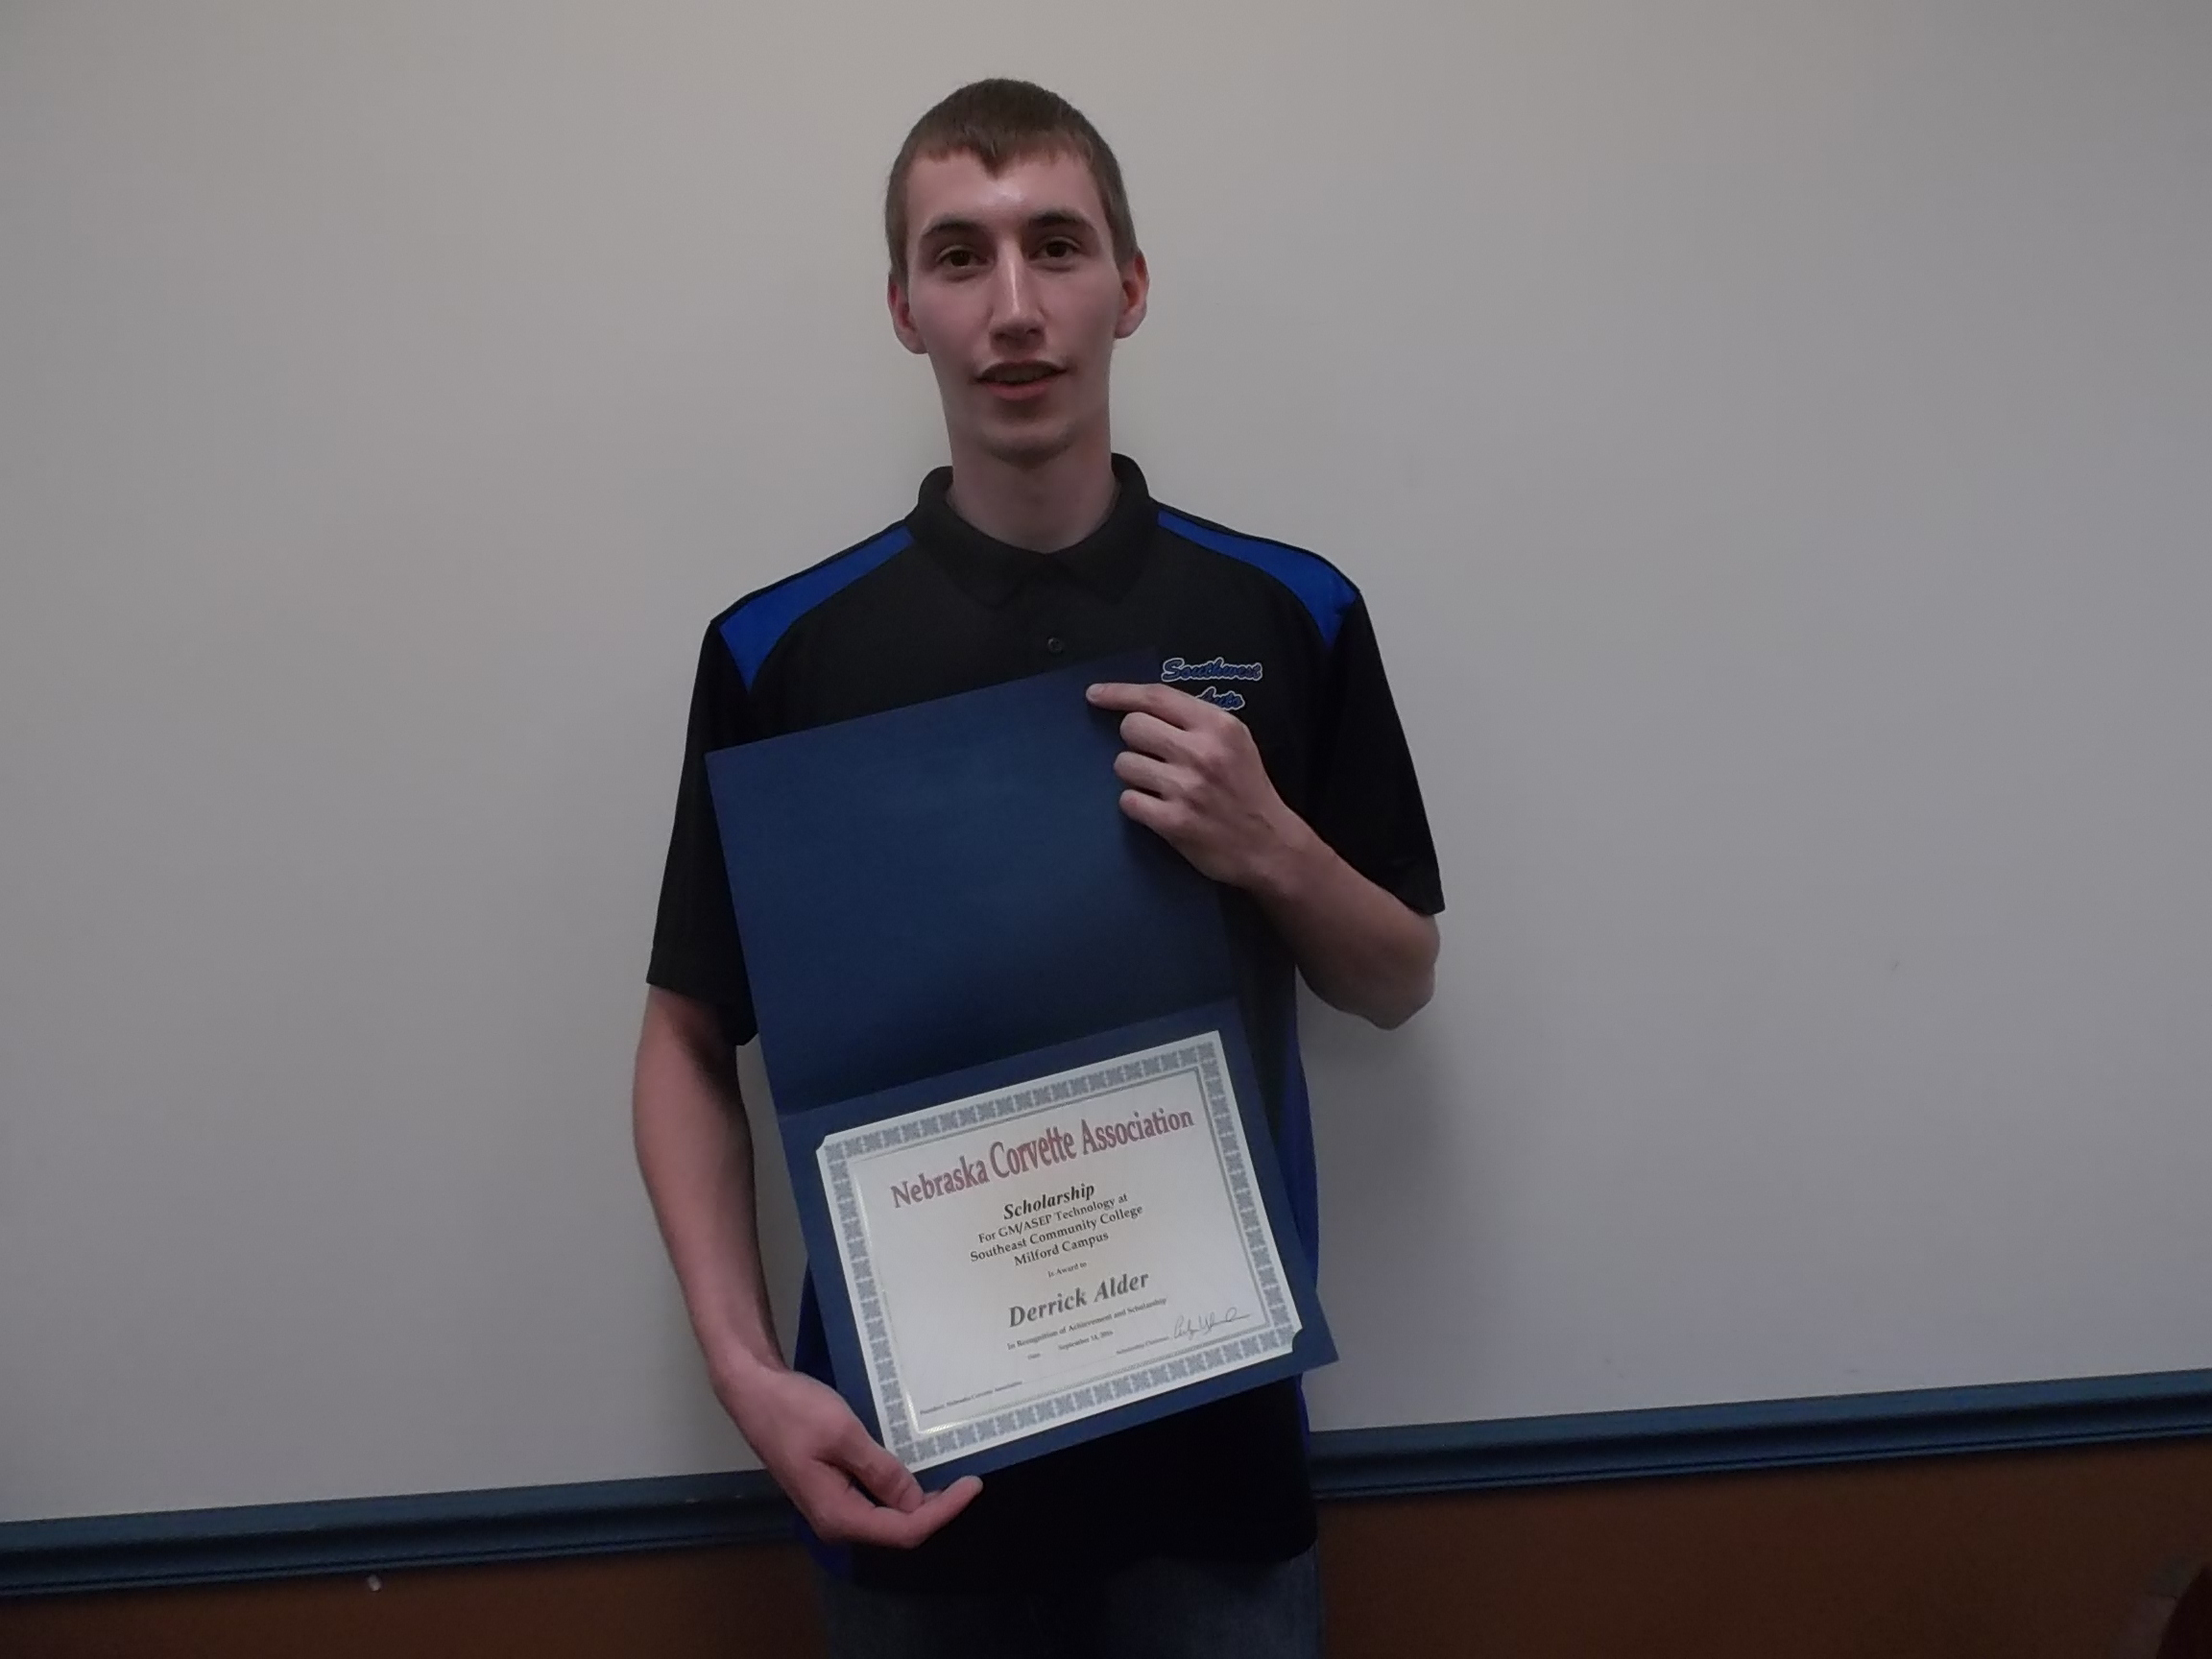 Derrick Alder from Lincoln, NE is sponsored in ASEP by Southwest Auto in Lincoln, NE